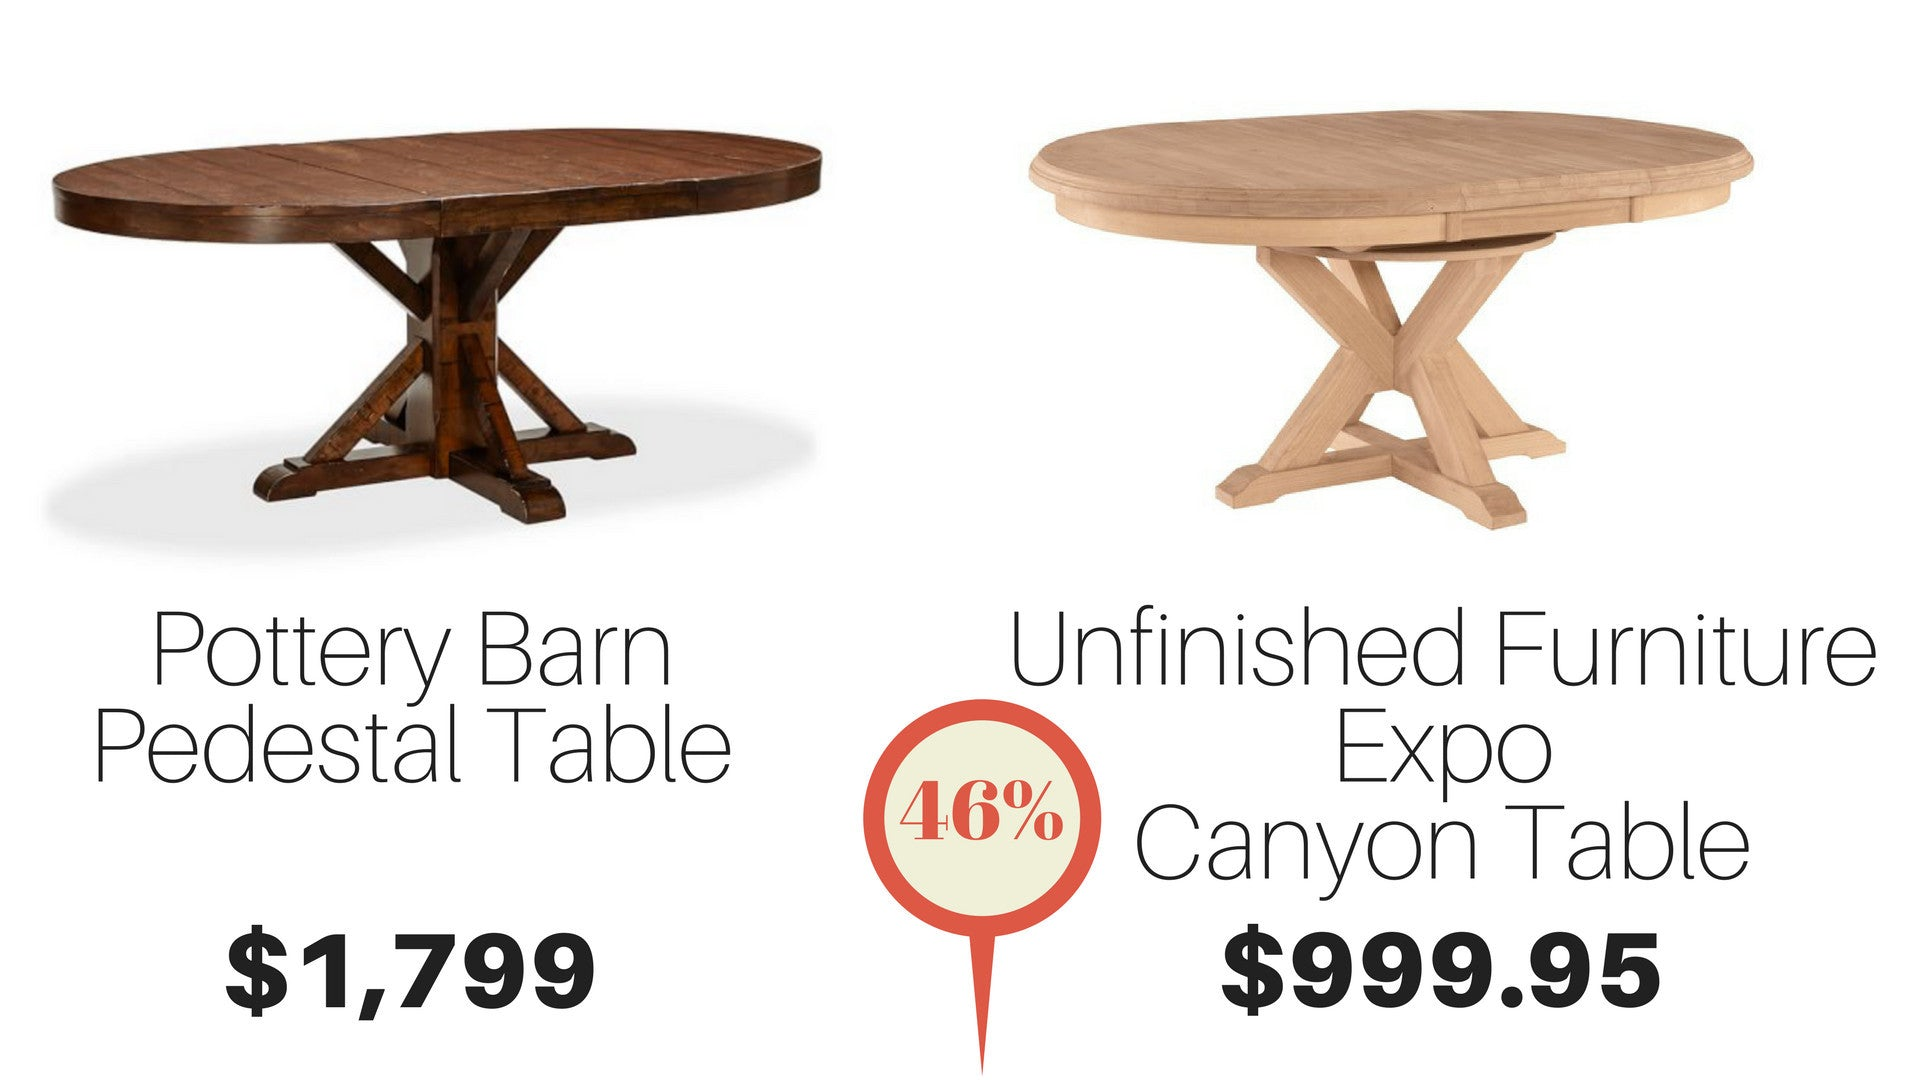 Unfinished Furniture Expo   #1 Source Of Discount Unfinished Furniture